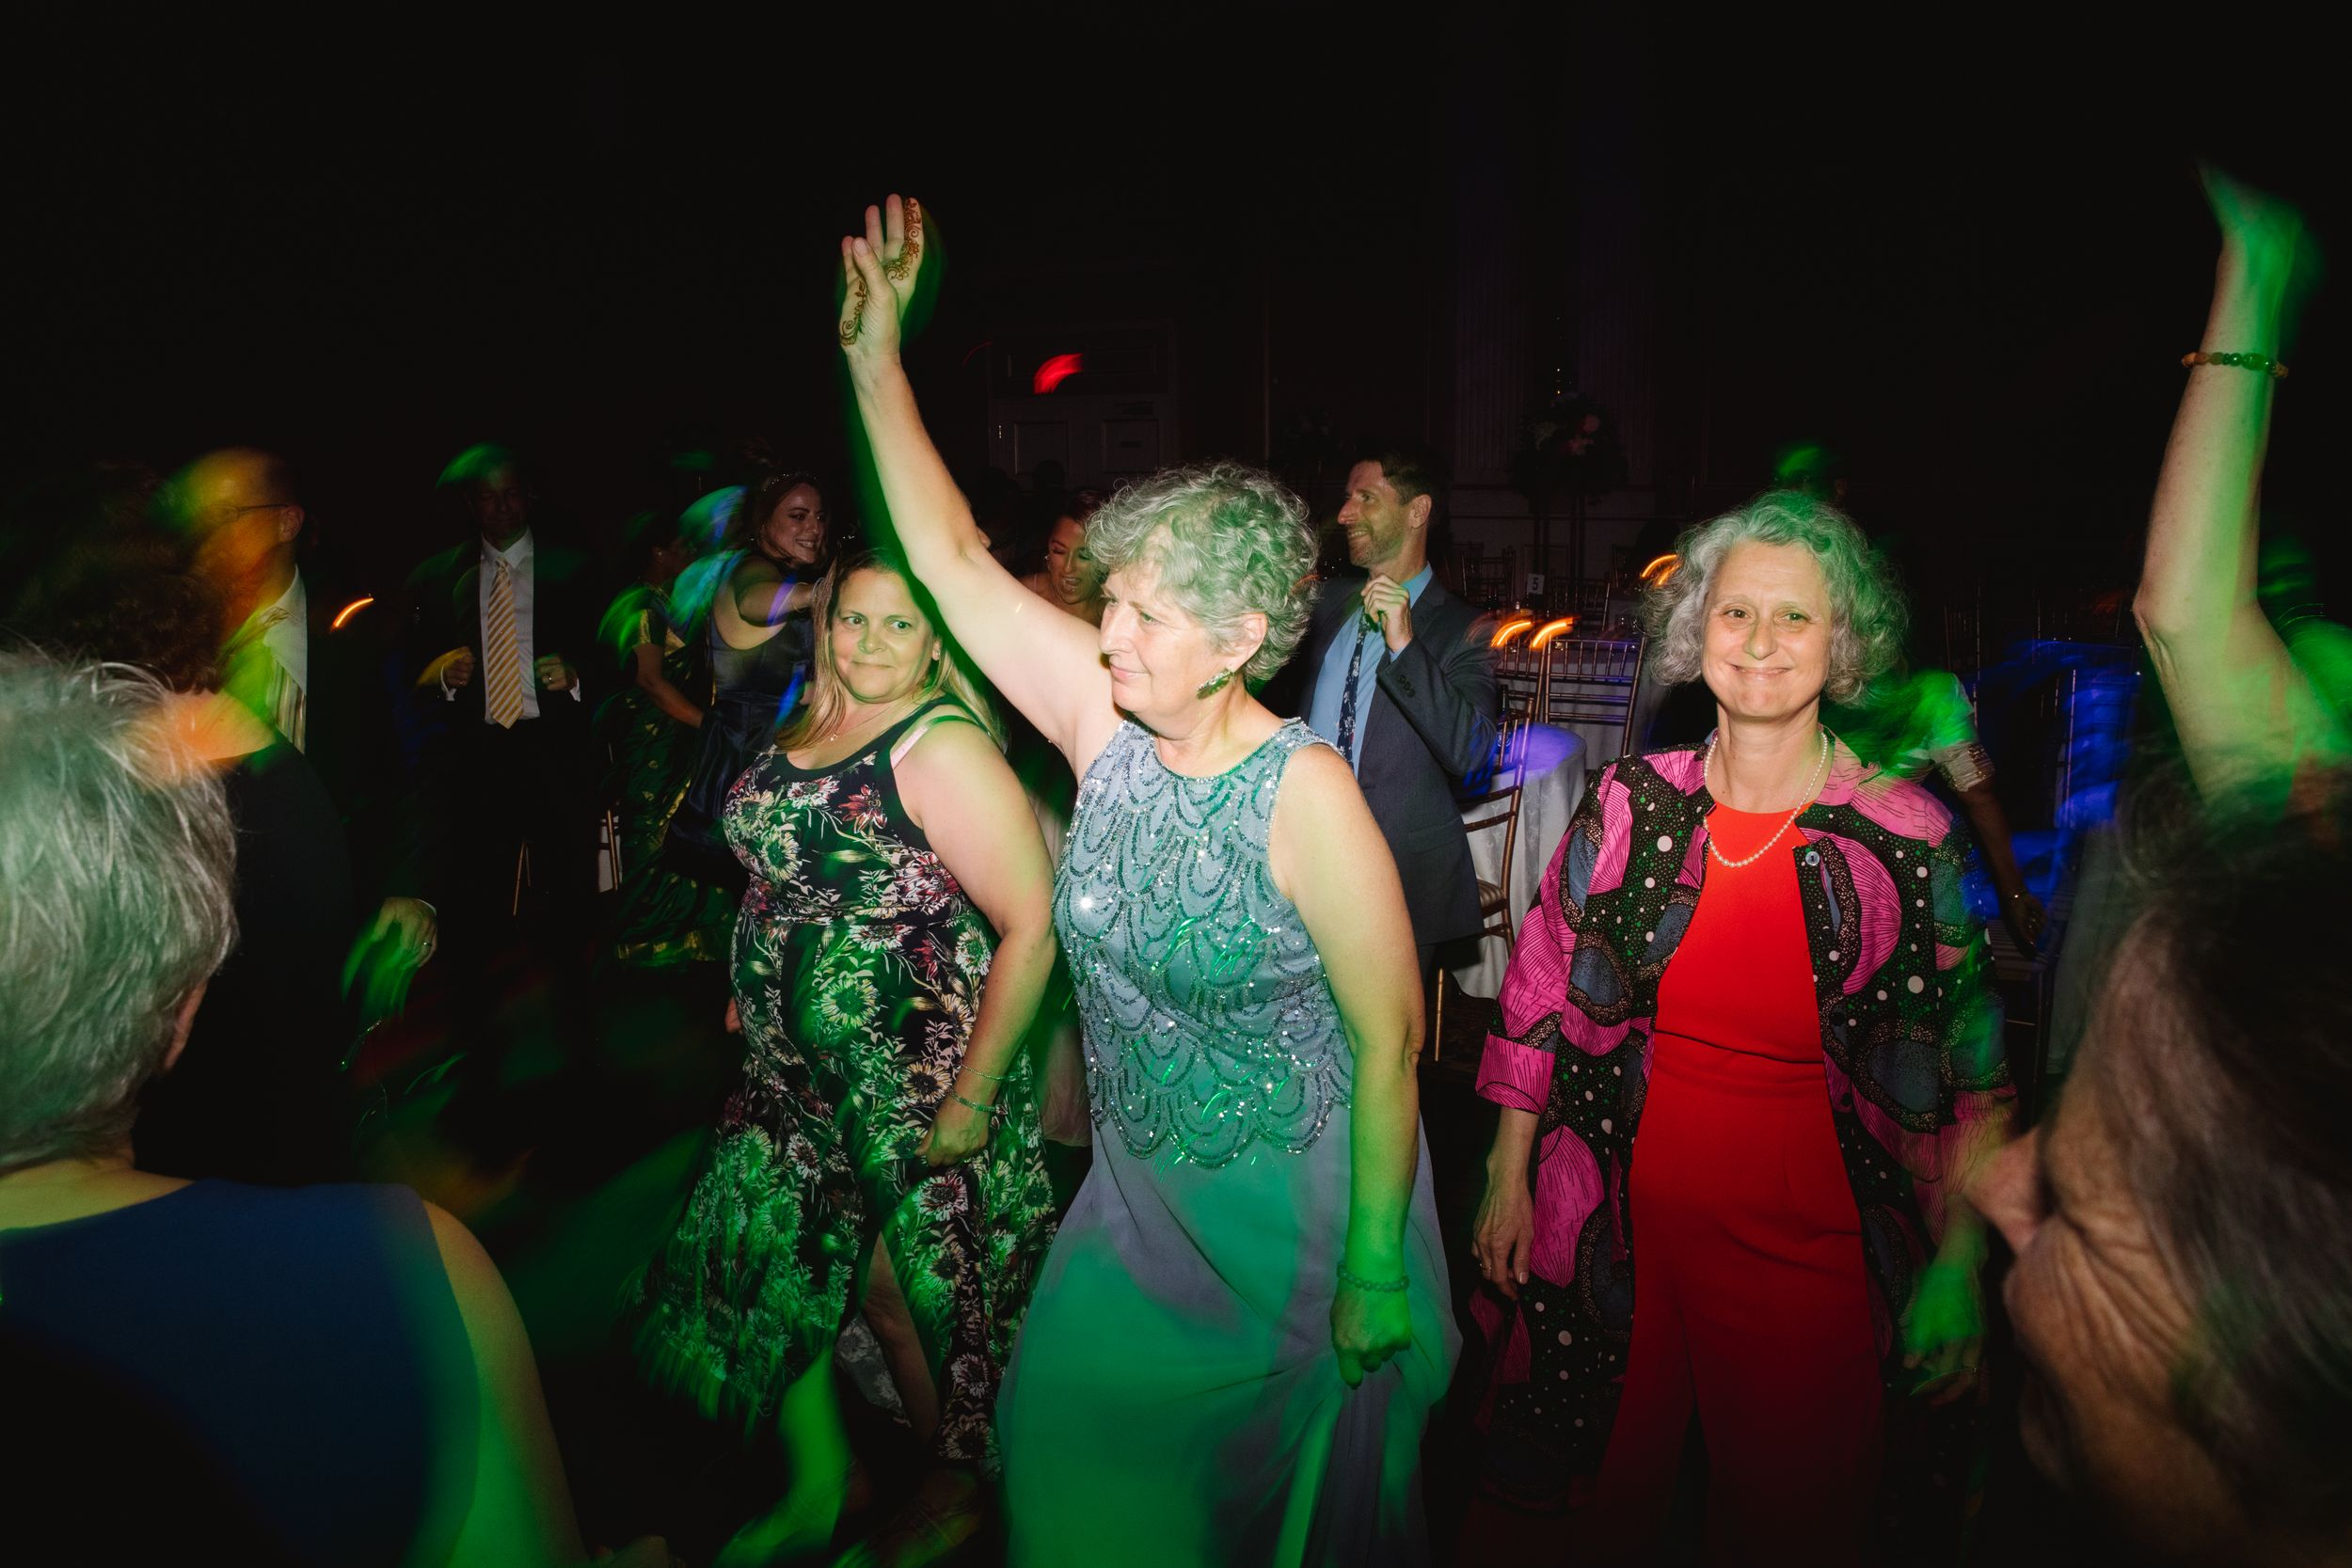 mother of bride dancing during reception hand up in the air